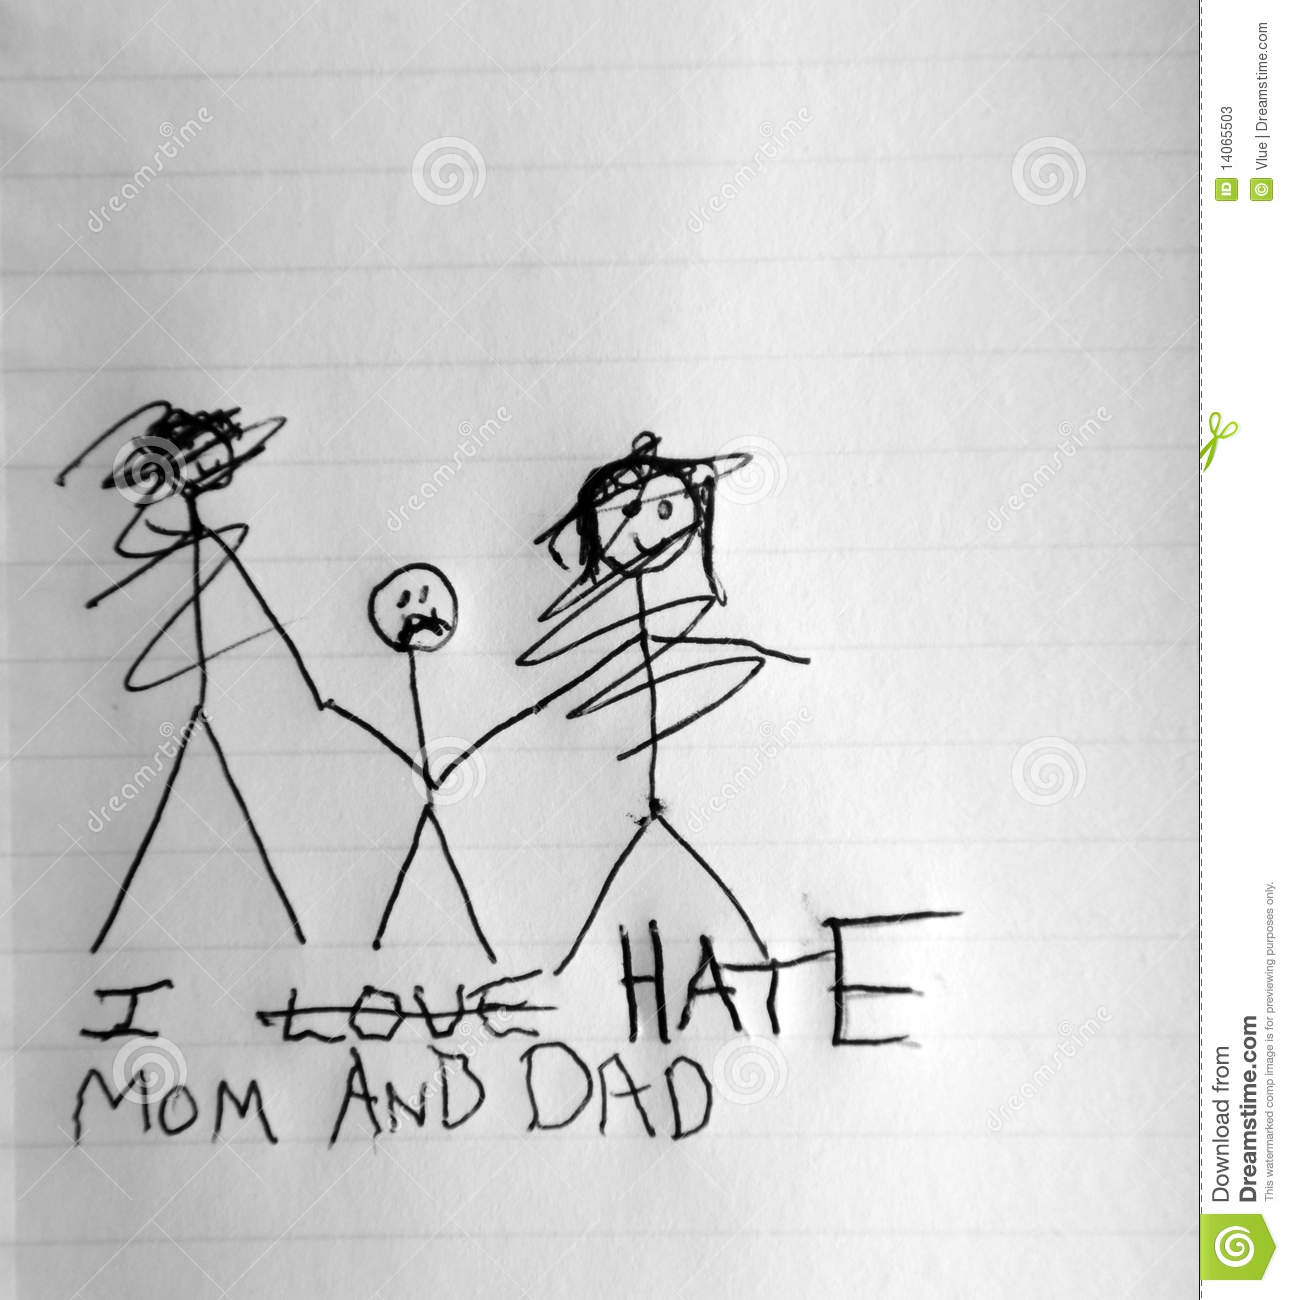 i love you mom and dad pictures i hate mom and dad stock illustration illustration of you i dad mom and pictures love